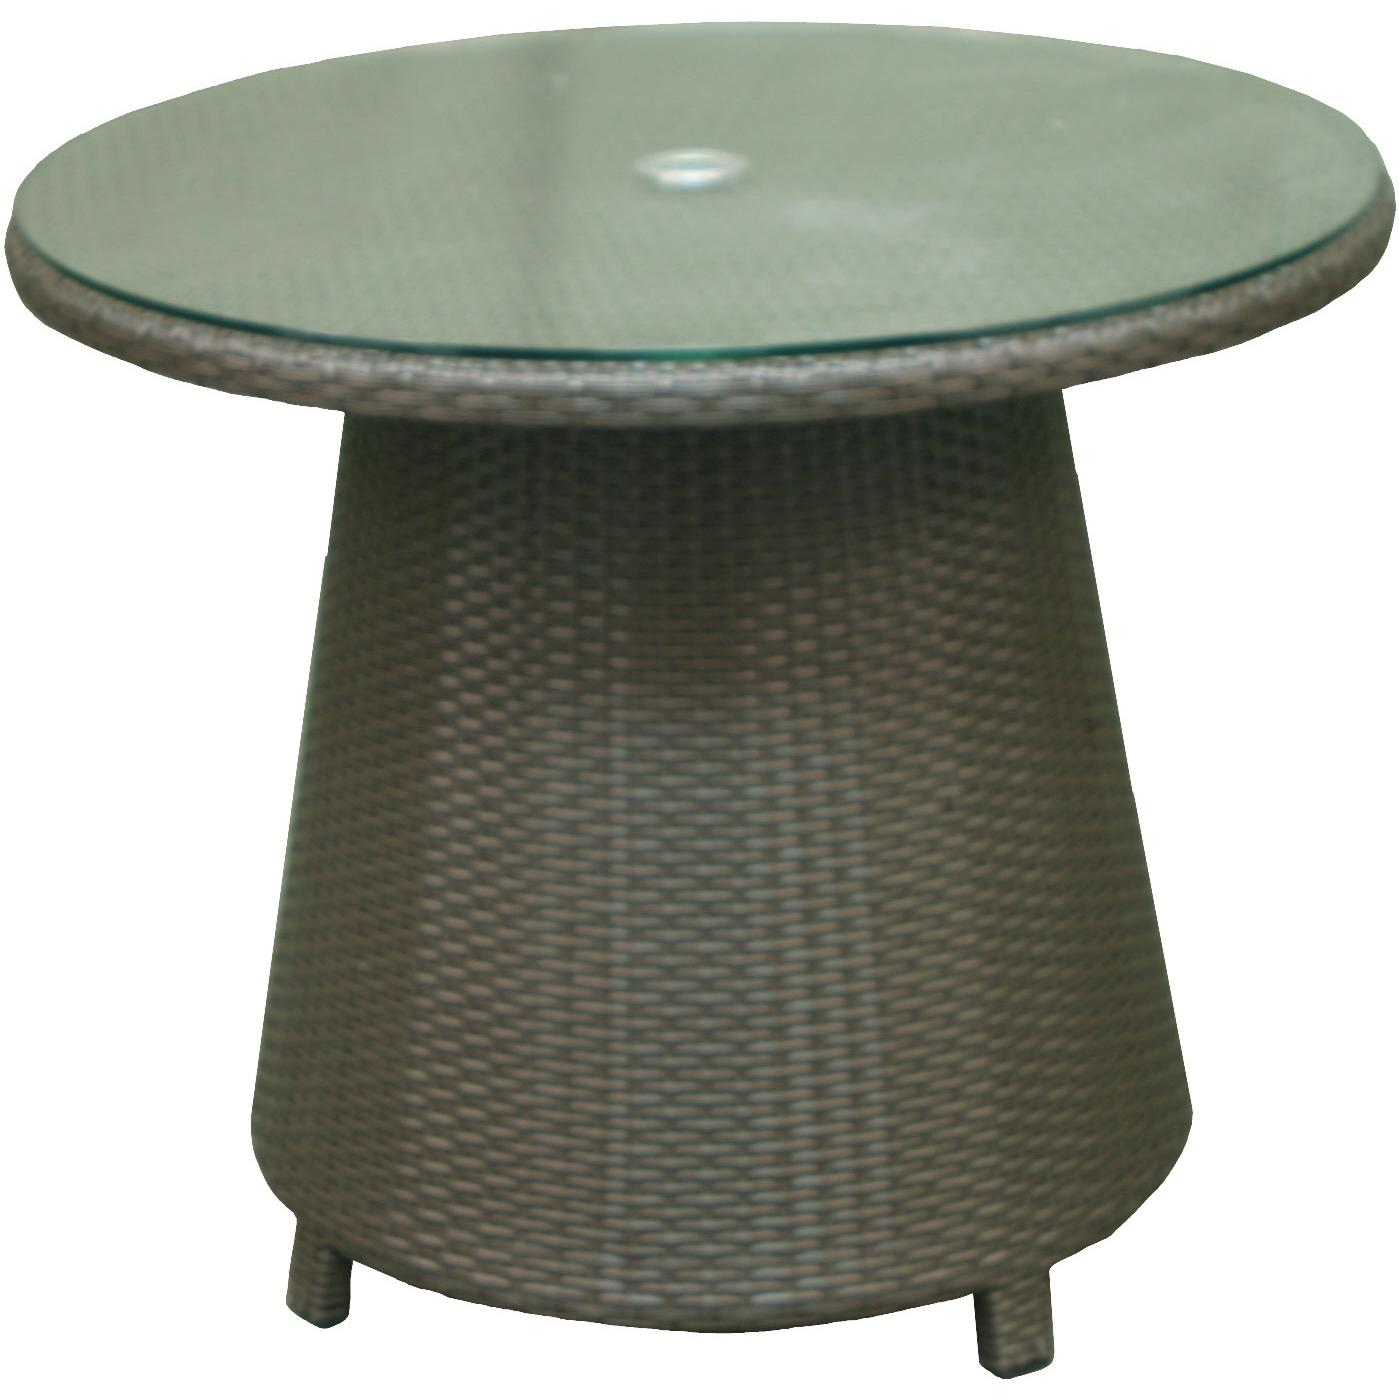 Glass Only For Melrose Round Chat/Conversation Table